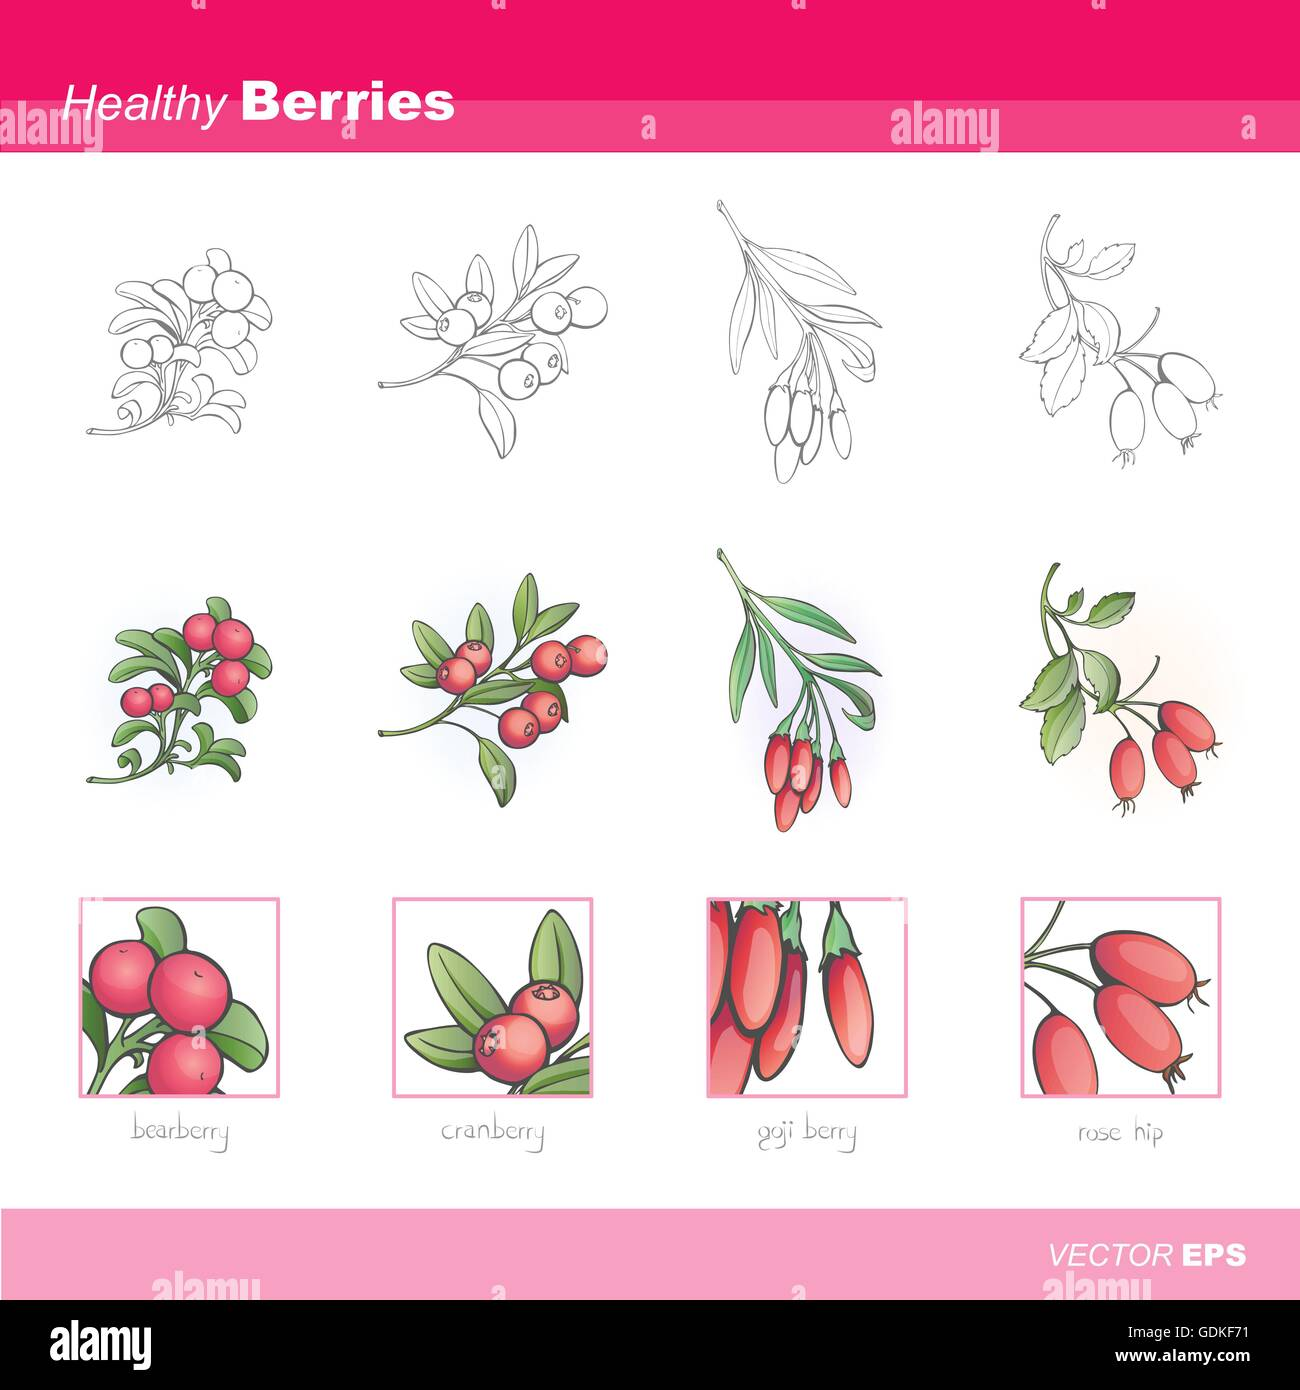 Healthy berries set: gojy, rosehip, cranberry  and bearberry - Stock Vector